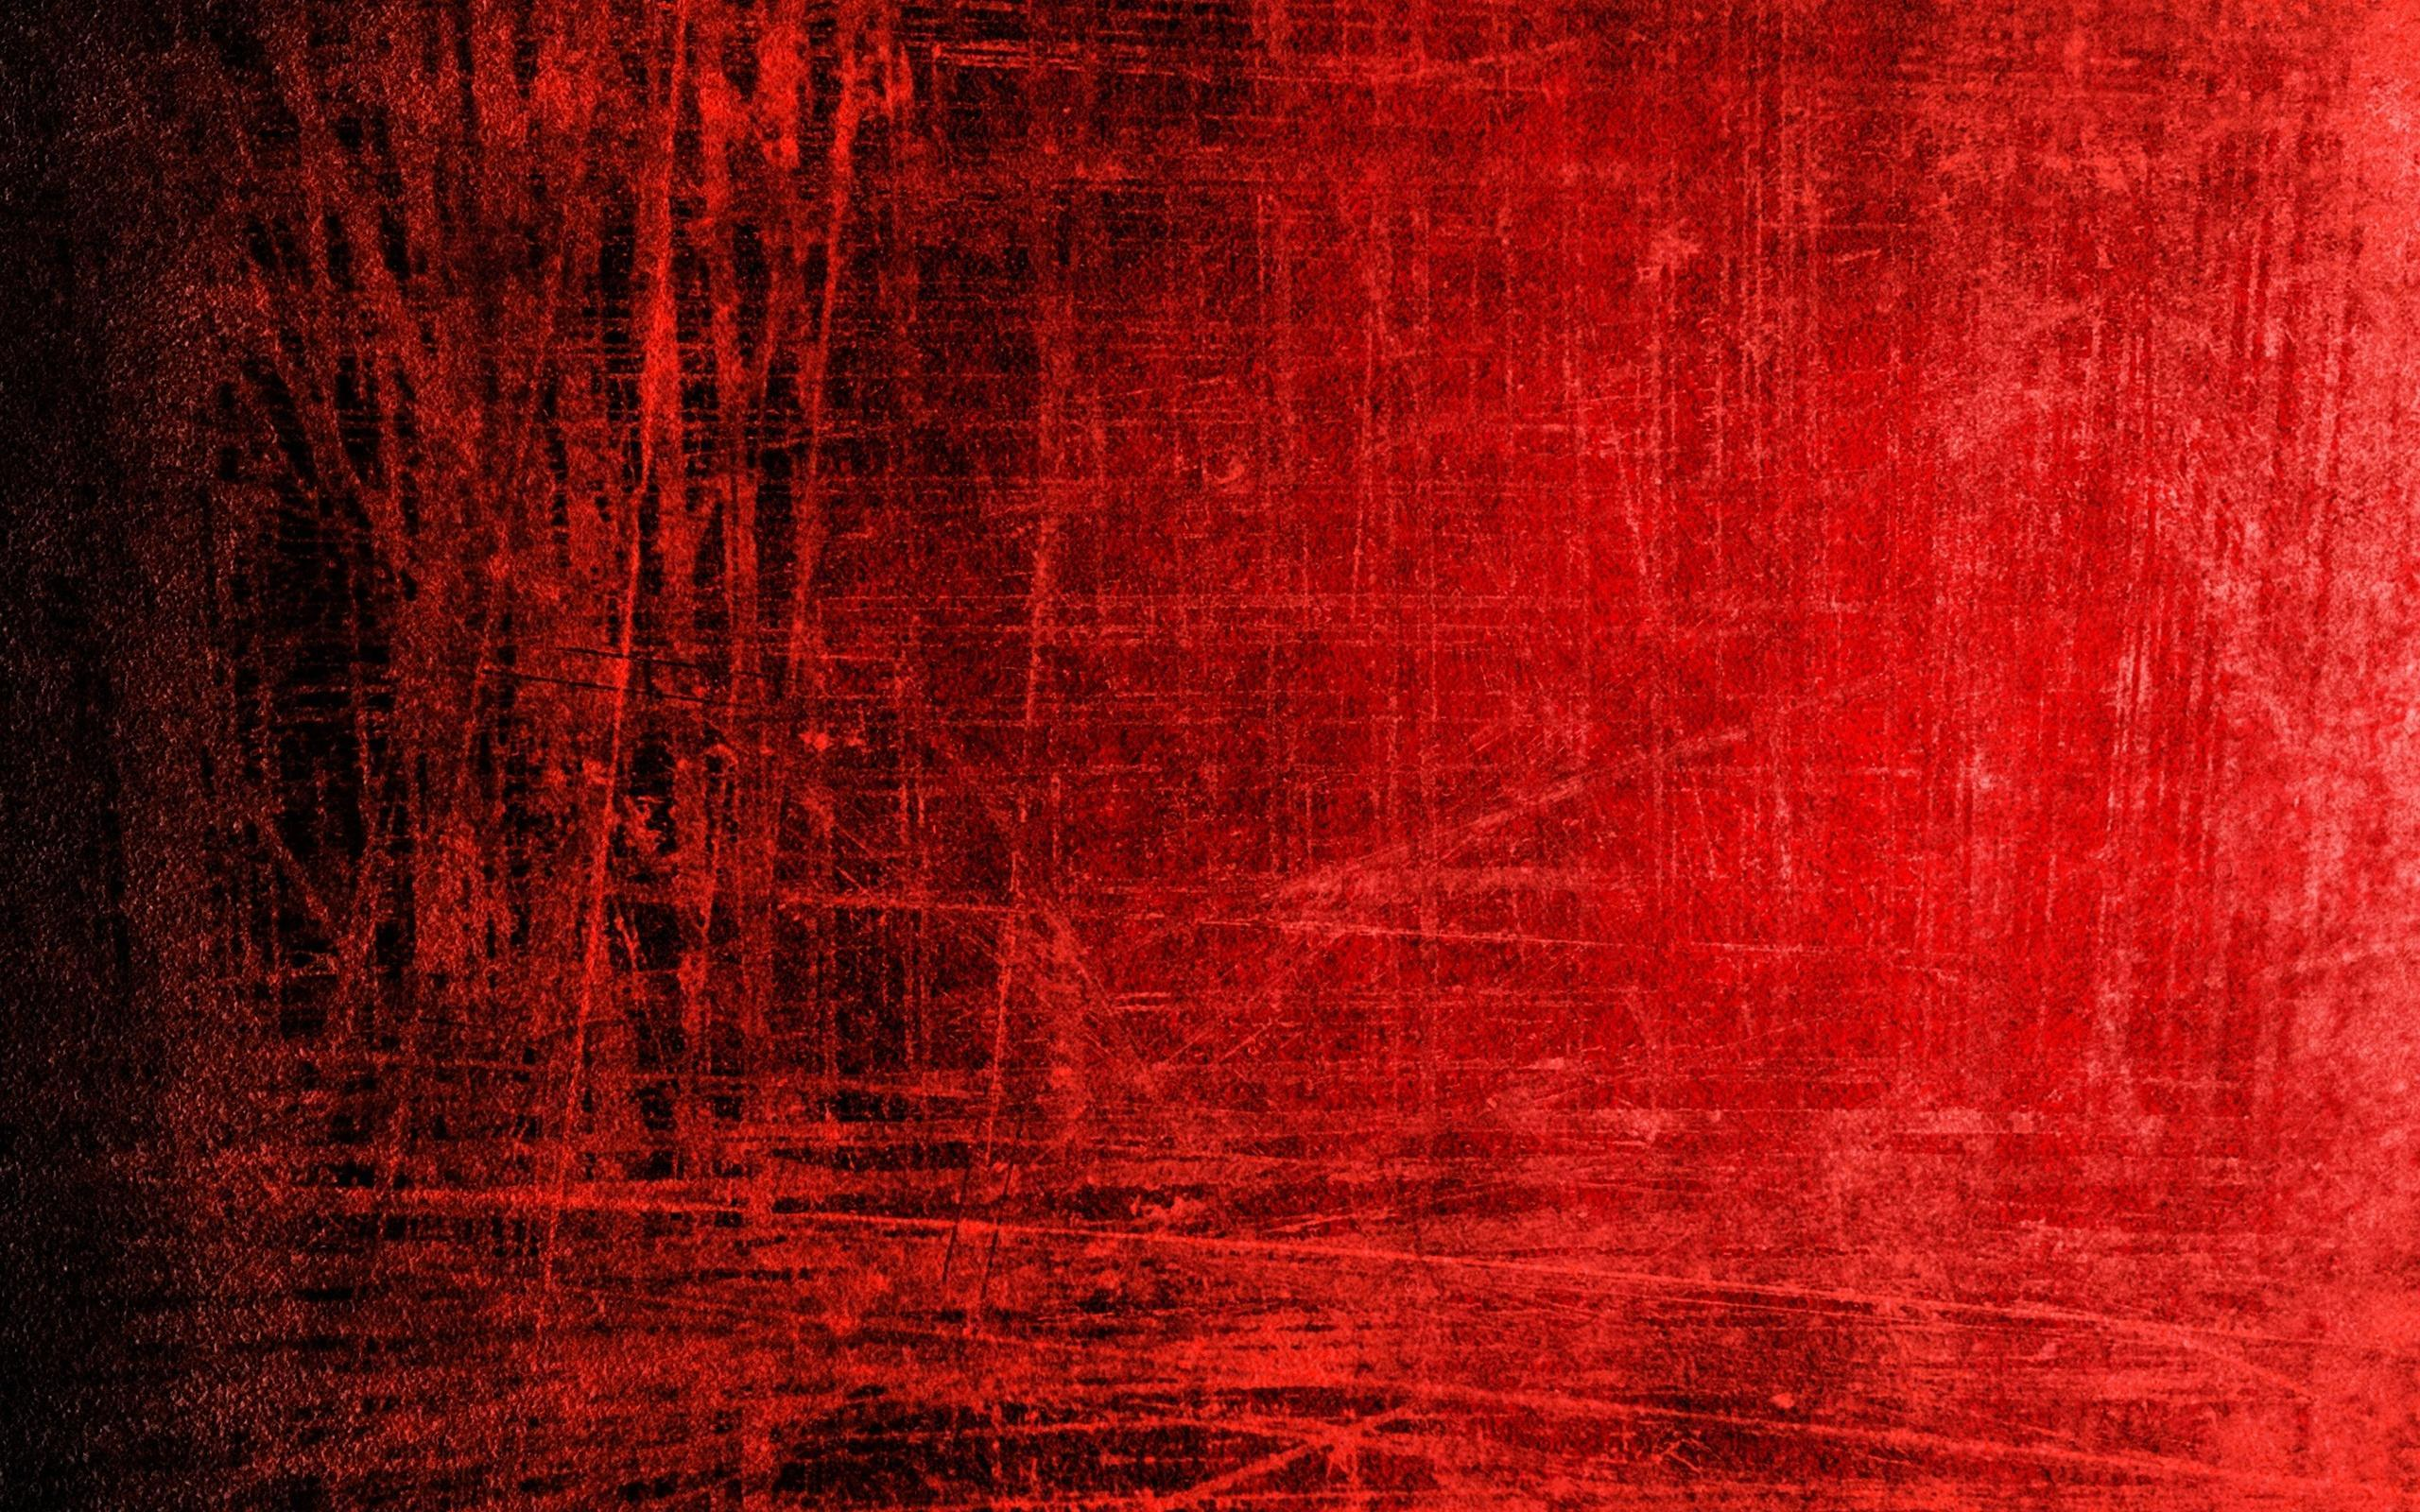 Red Backgrounds Image